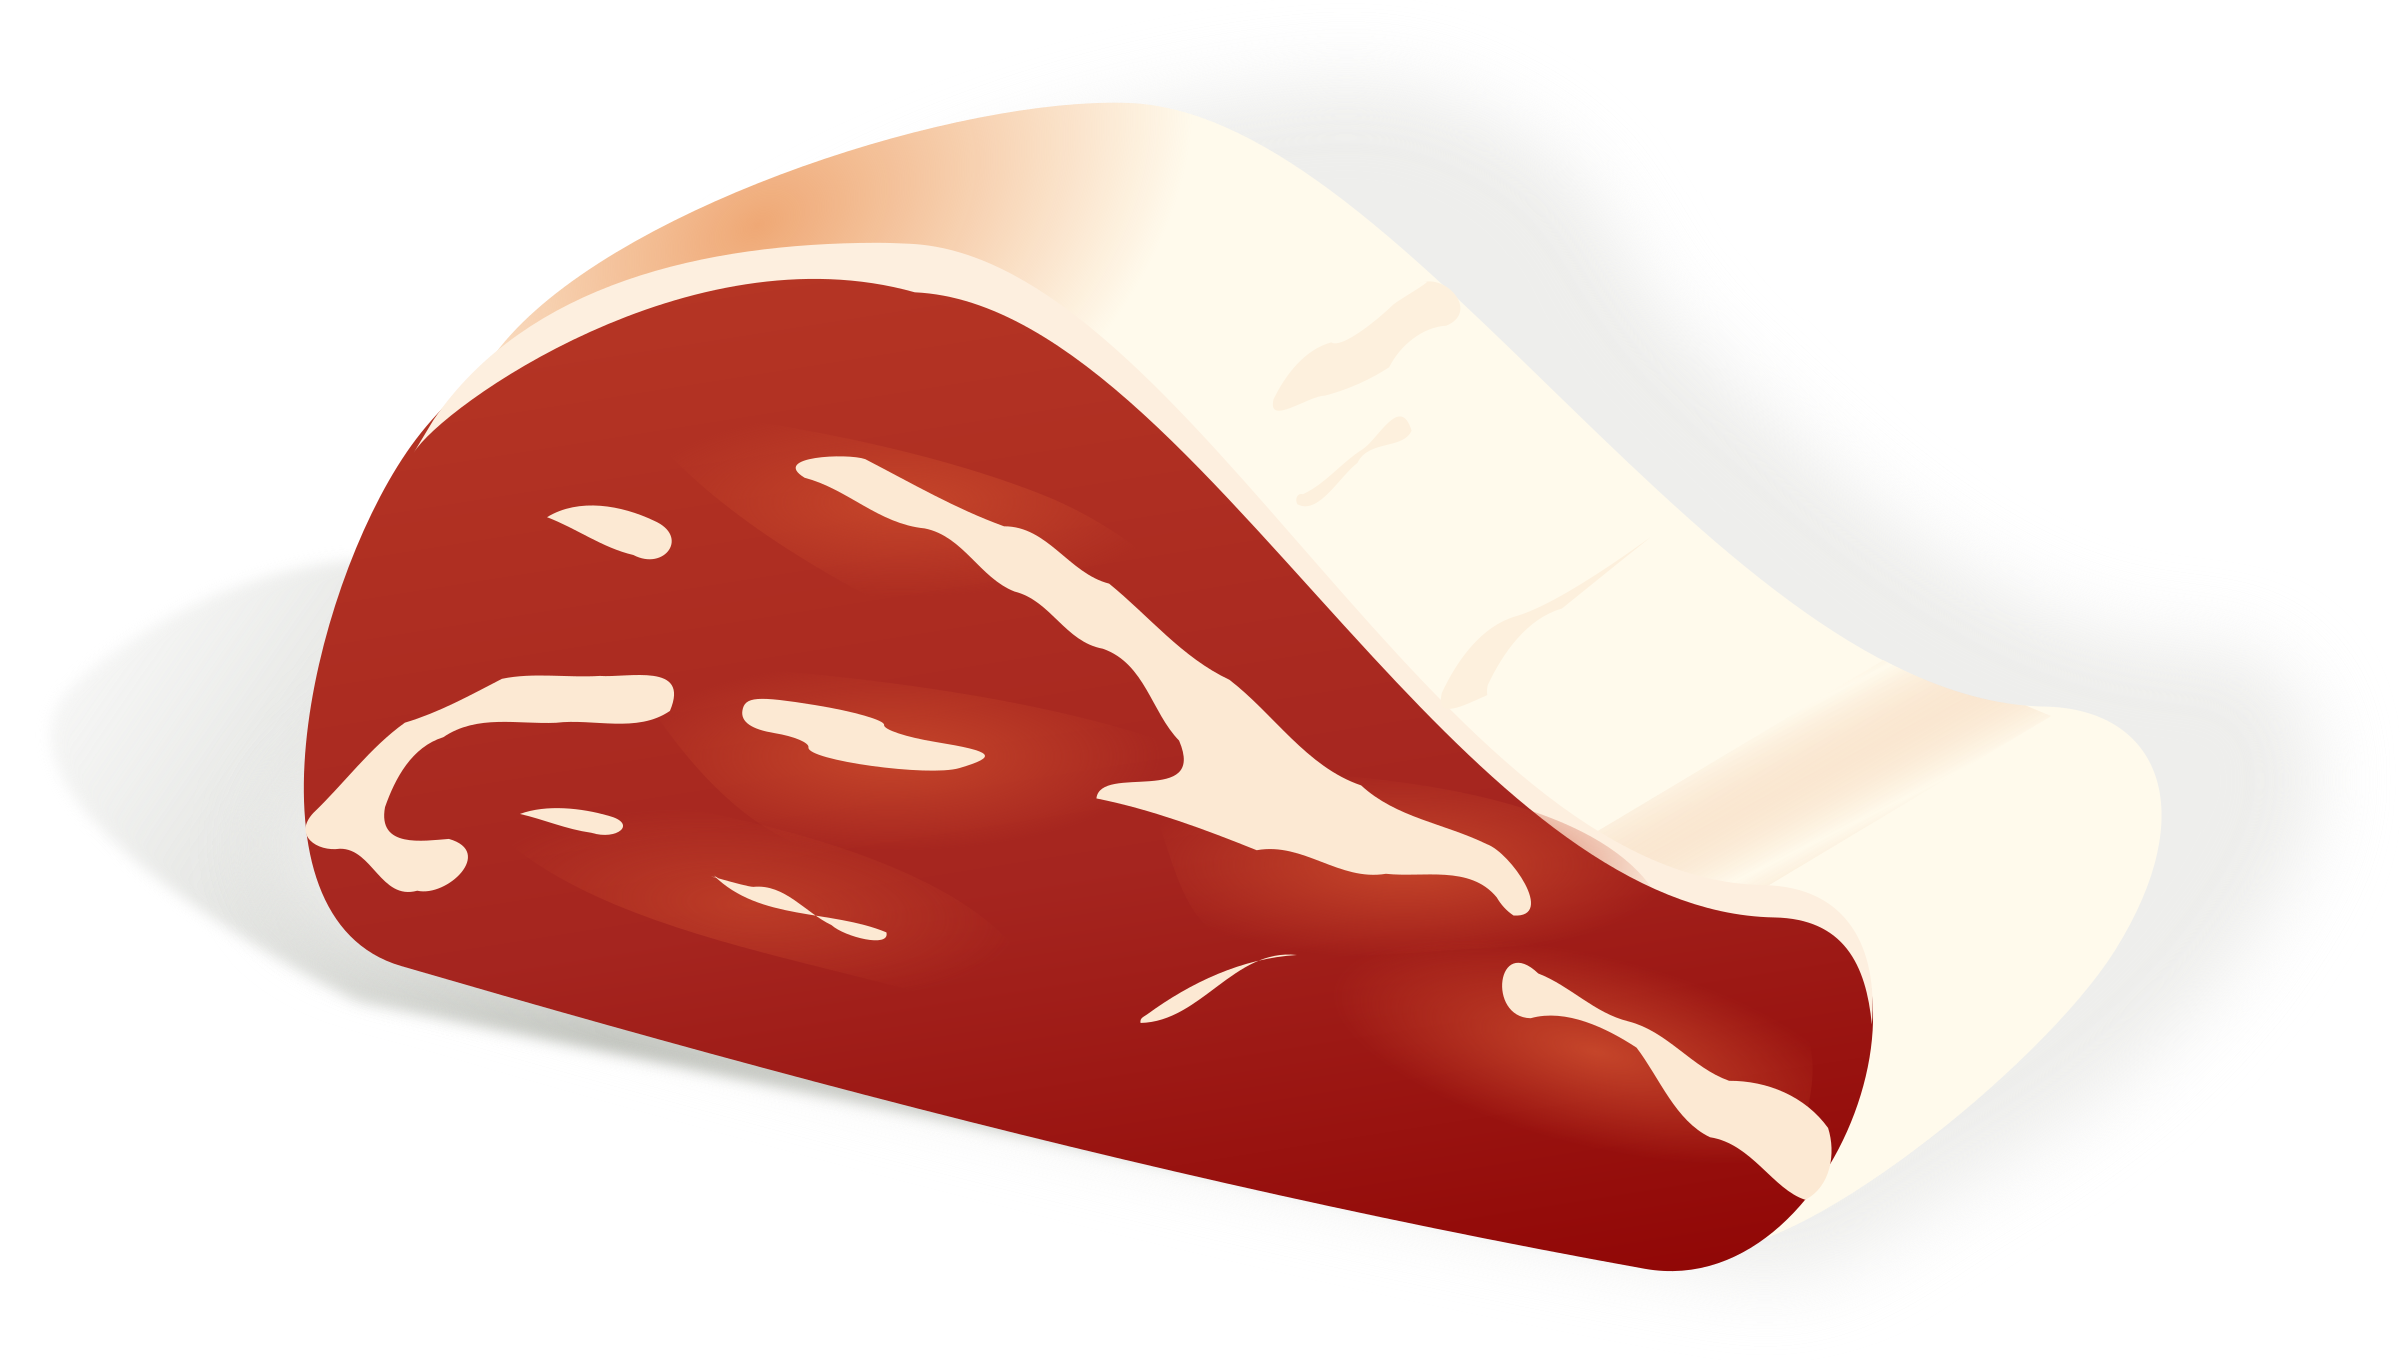 Foods clipart meat. Big image png